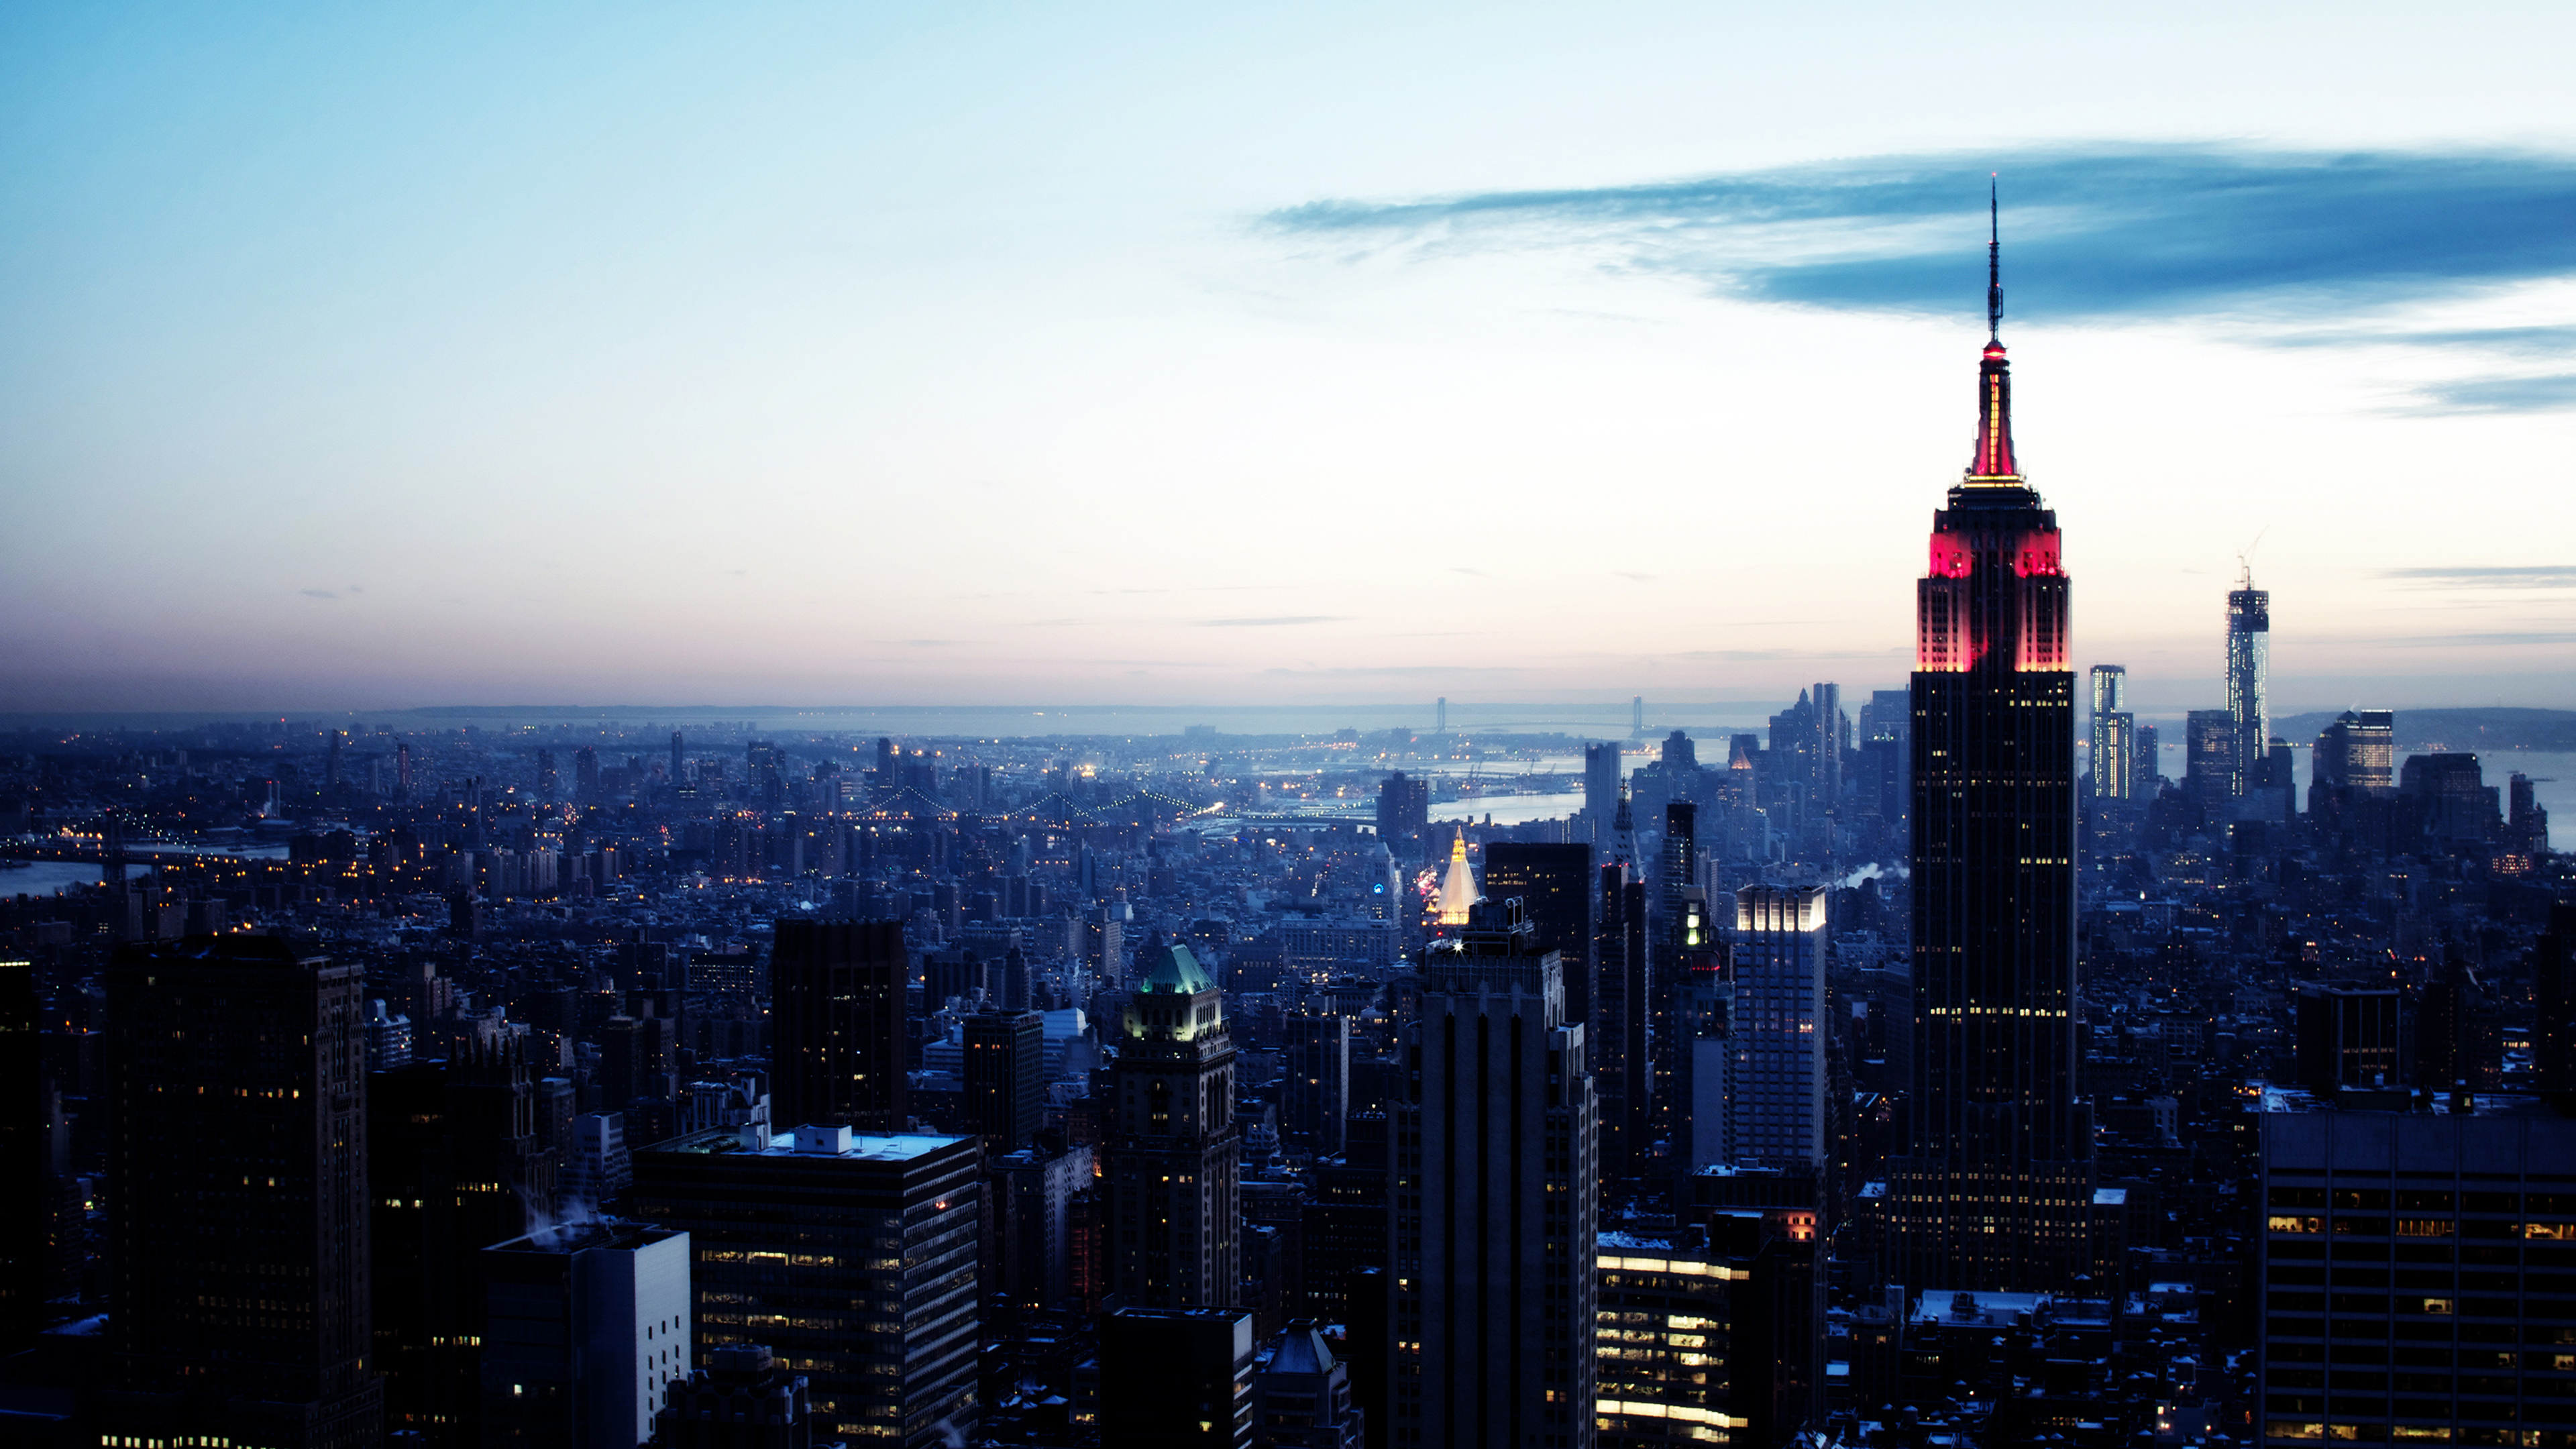 Wallpaper 4k Empire State Building New York 4k 4k Wallpapers Empire State Building Wallpapers Hd Wallpapers New York Wallpapers Photography Wallpapers Usa Wallpapers World Wallpapers